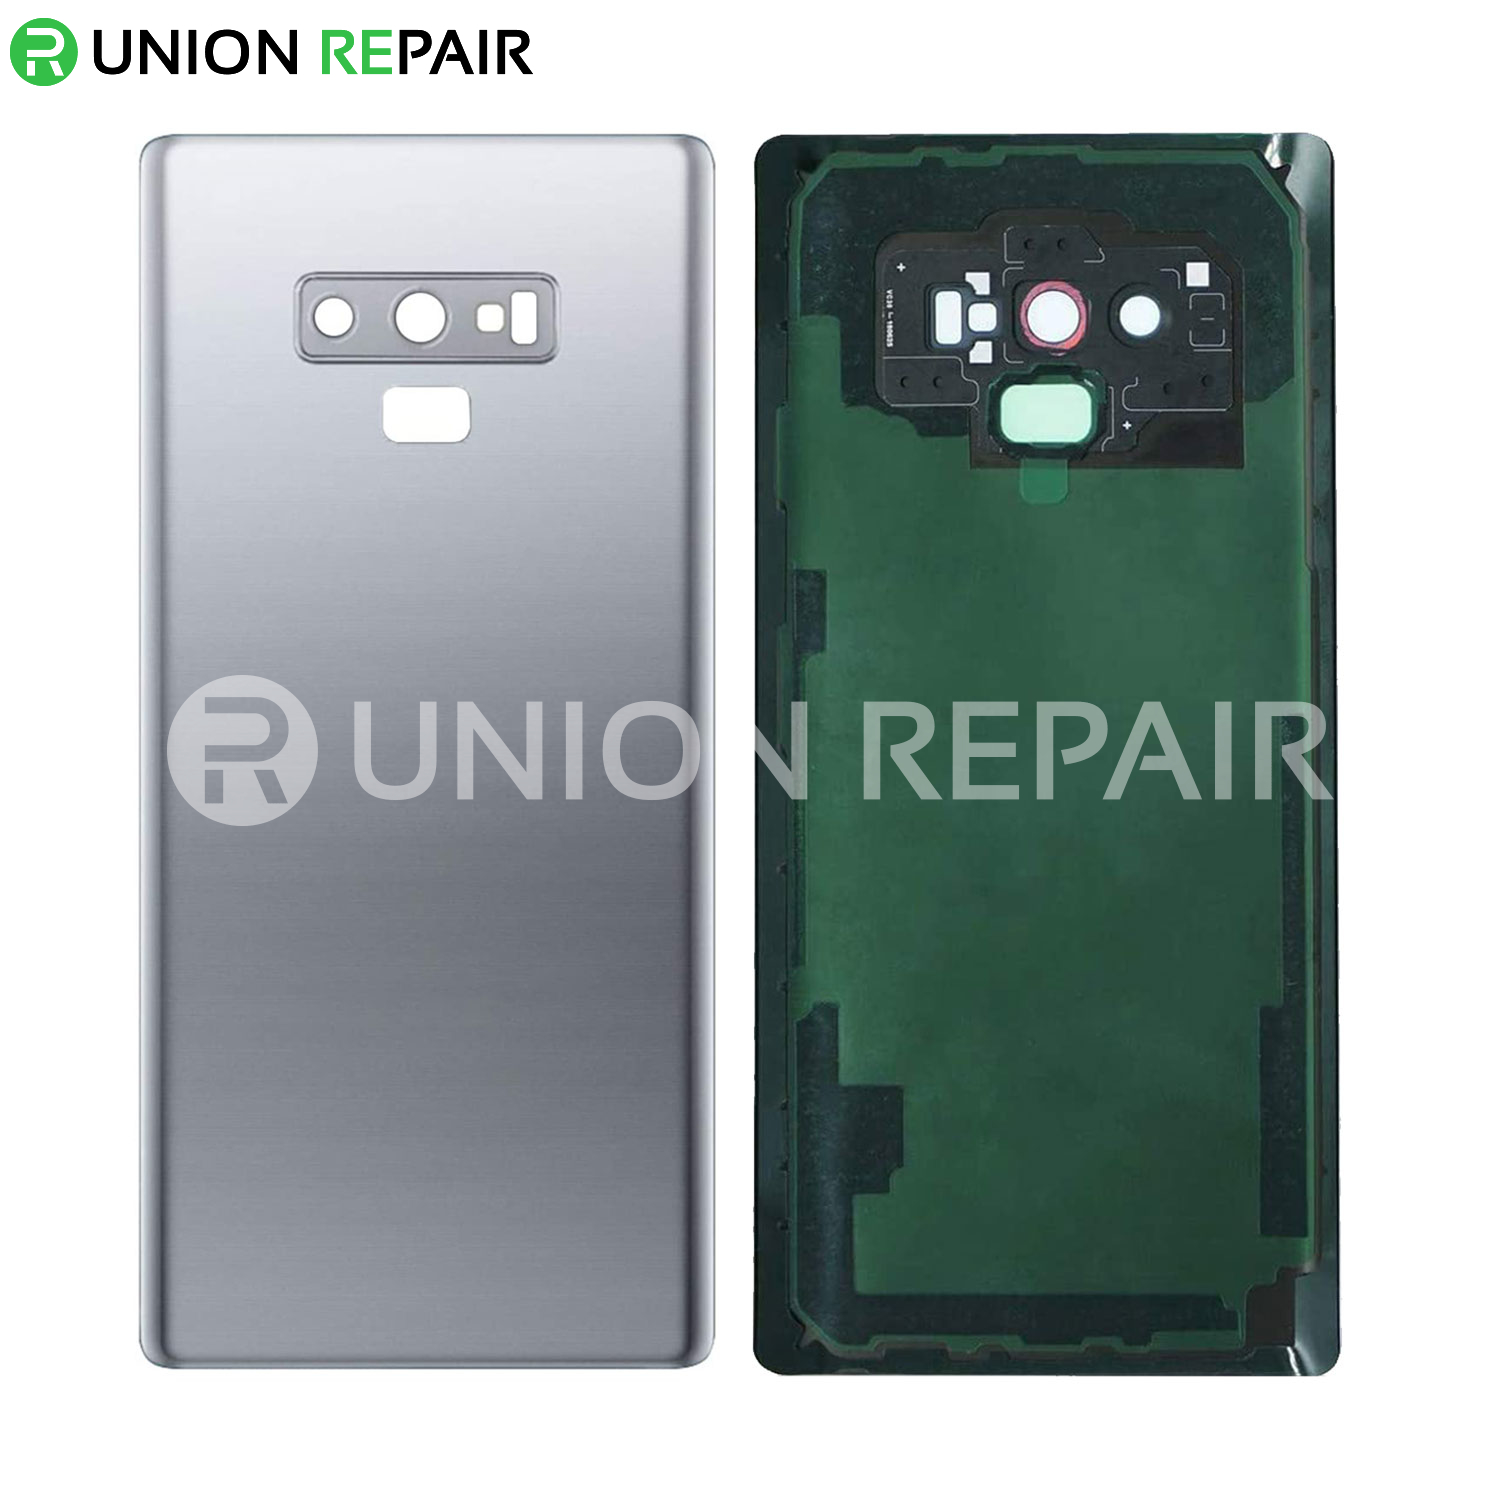 Replacement for Samsung Galaxy Note 9 SM-N960 Back Cover - Cloud Silver